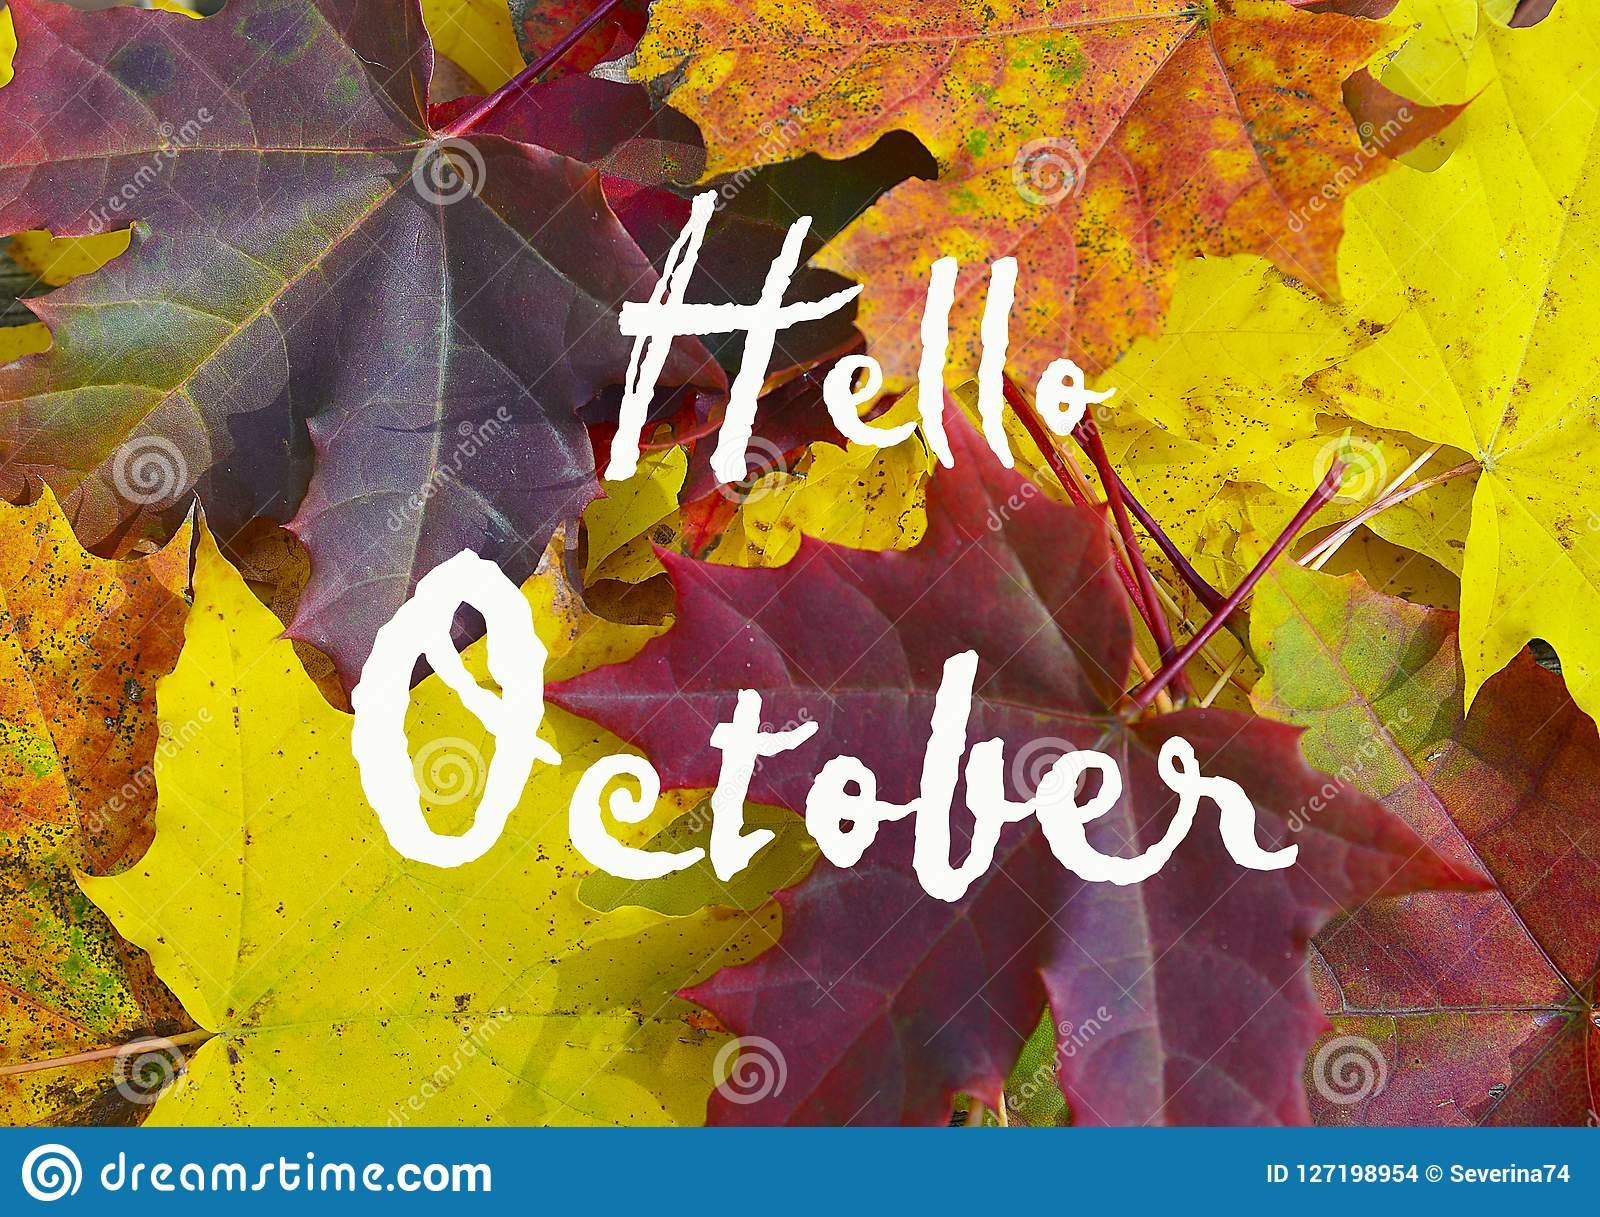 Colorful maple leaves background with text Hello October.Autumn or Fall season concept.